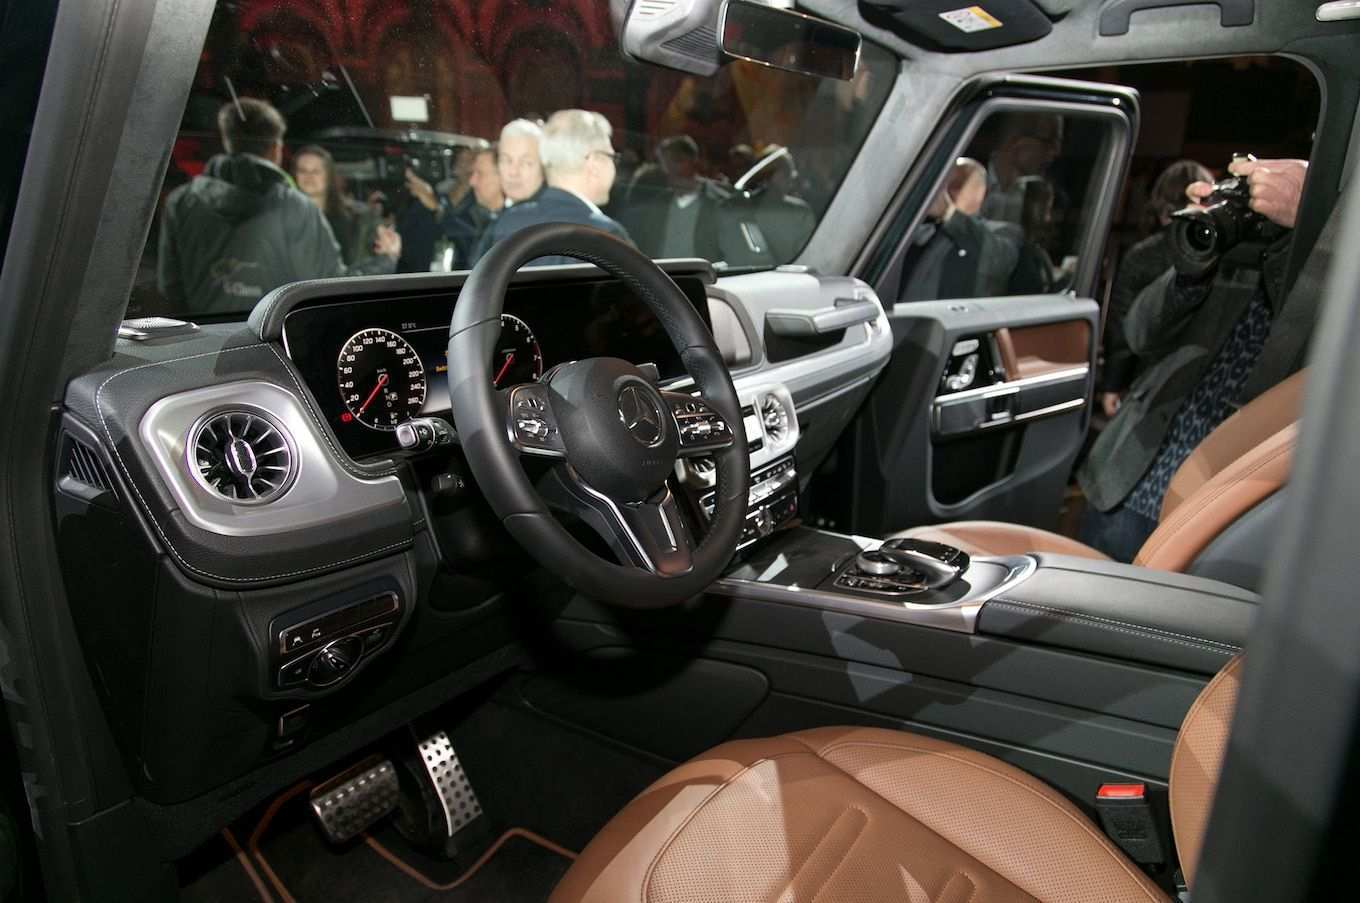 85 All New The Mercedes G 2019 Review Interior Pictures with The Mercedes G 2019 Review Interior